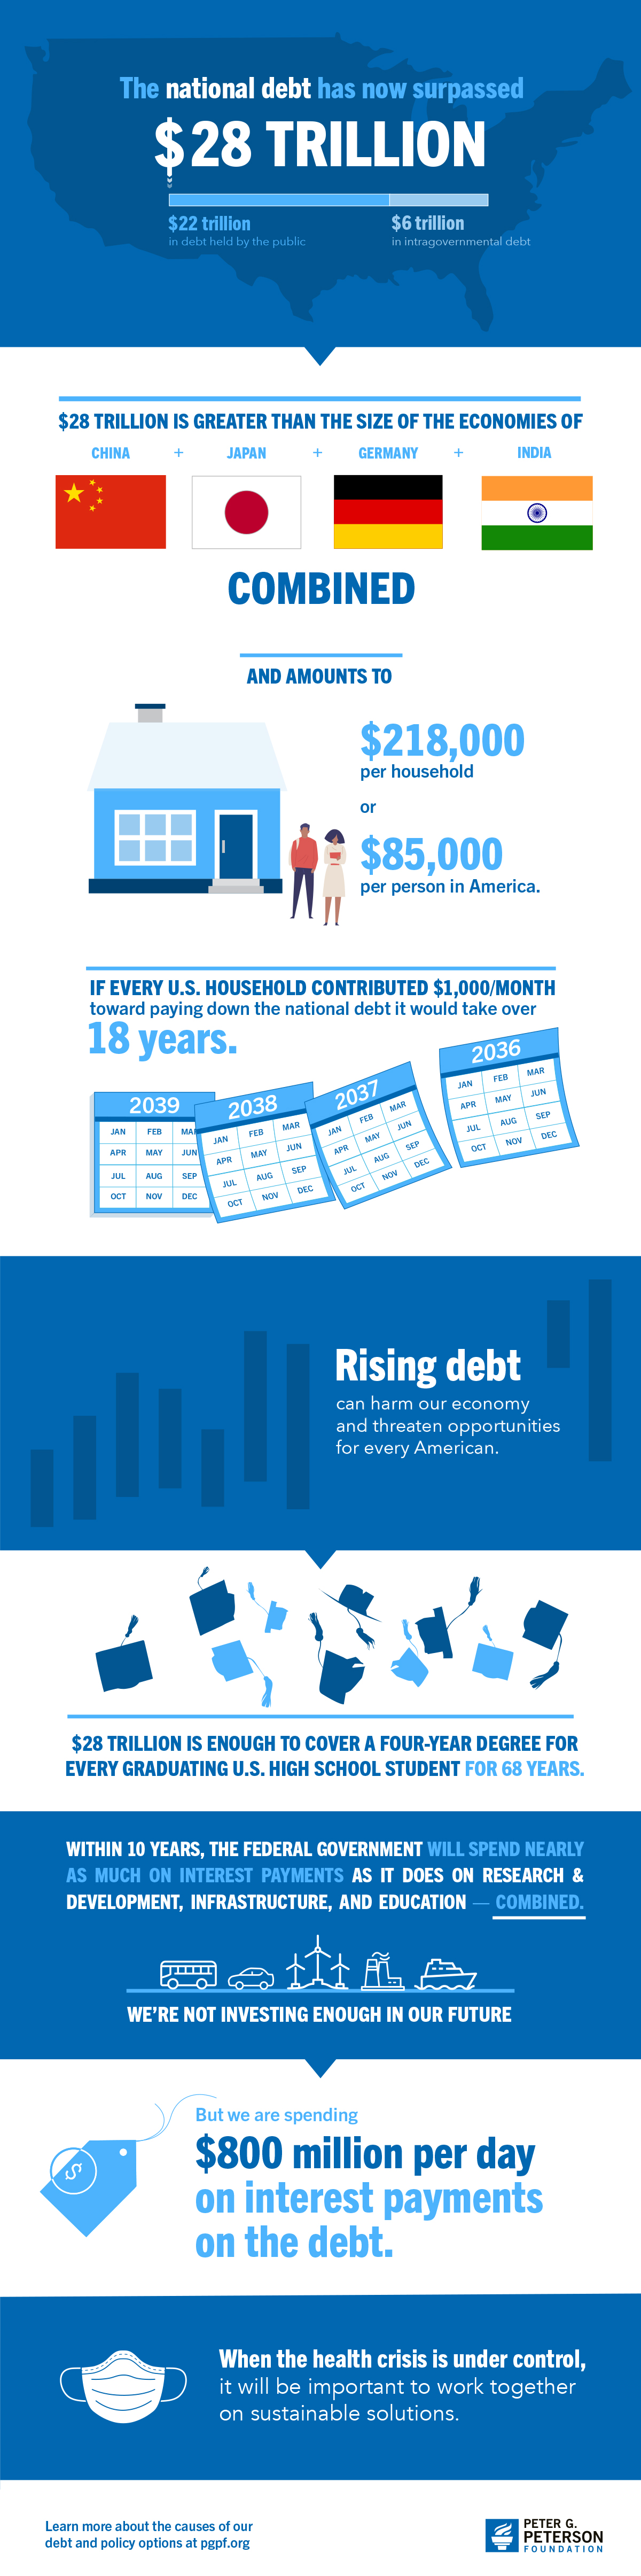 The National Debt is now more than $28 trillion. What does that mean?